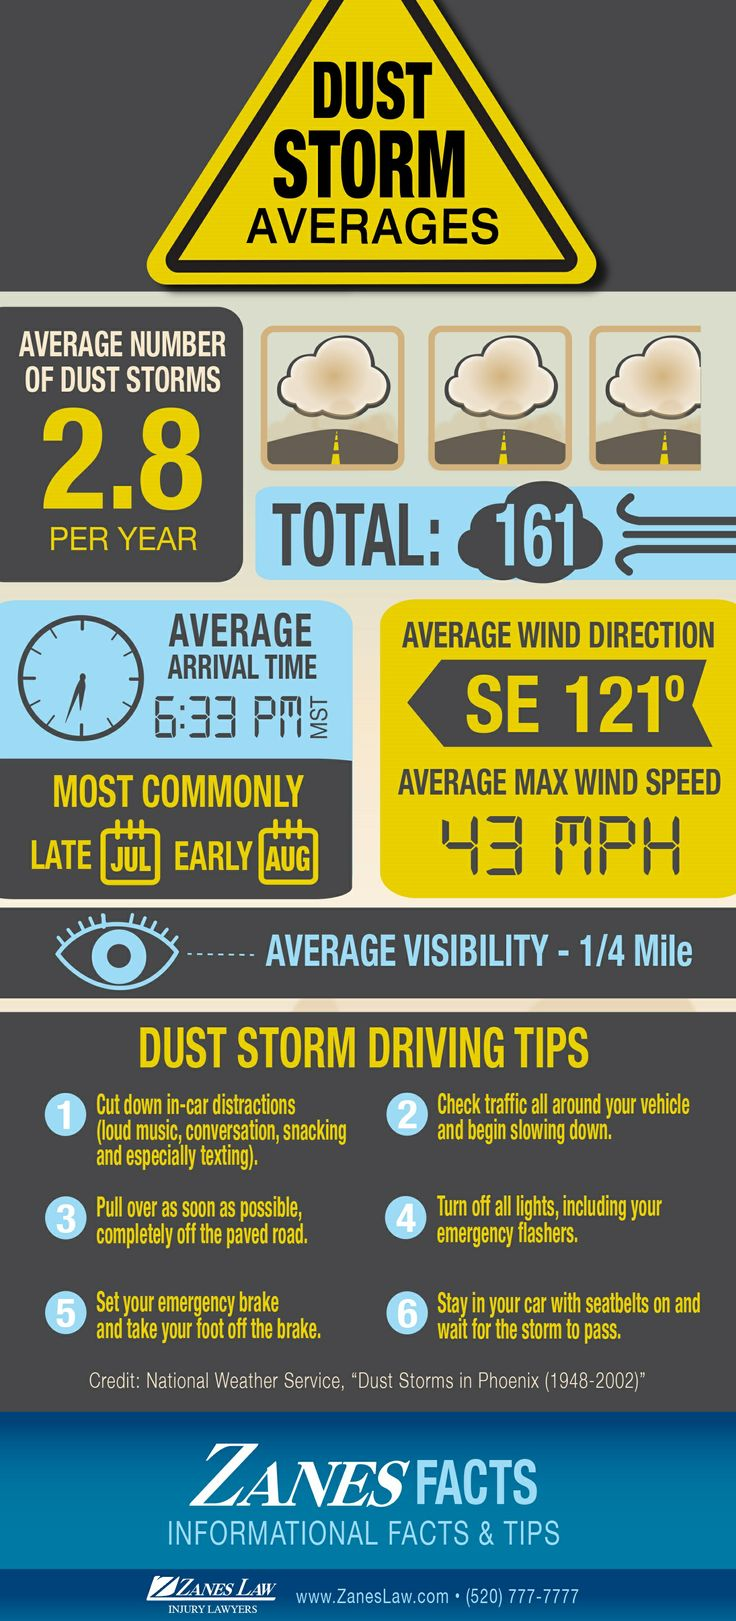 Safe driving in dust storm weather personalinjury